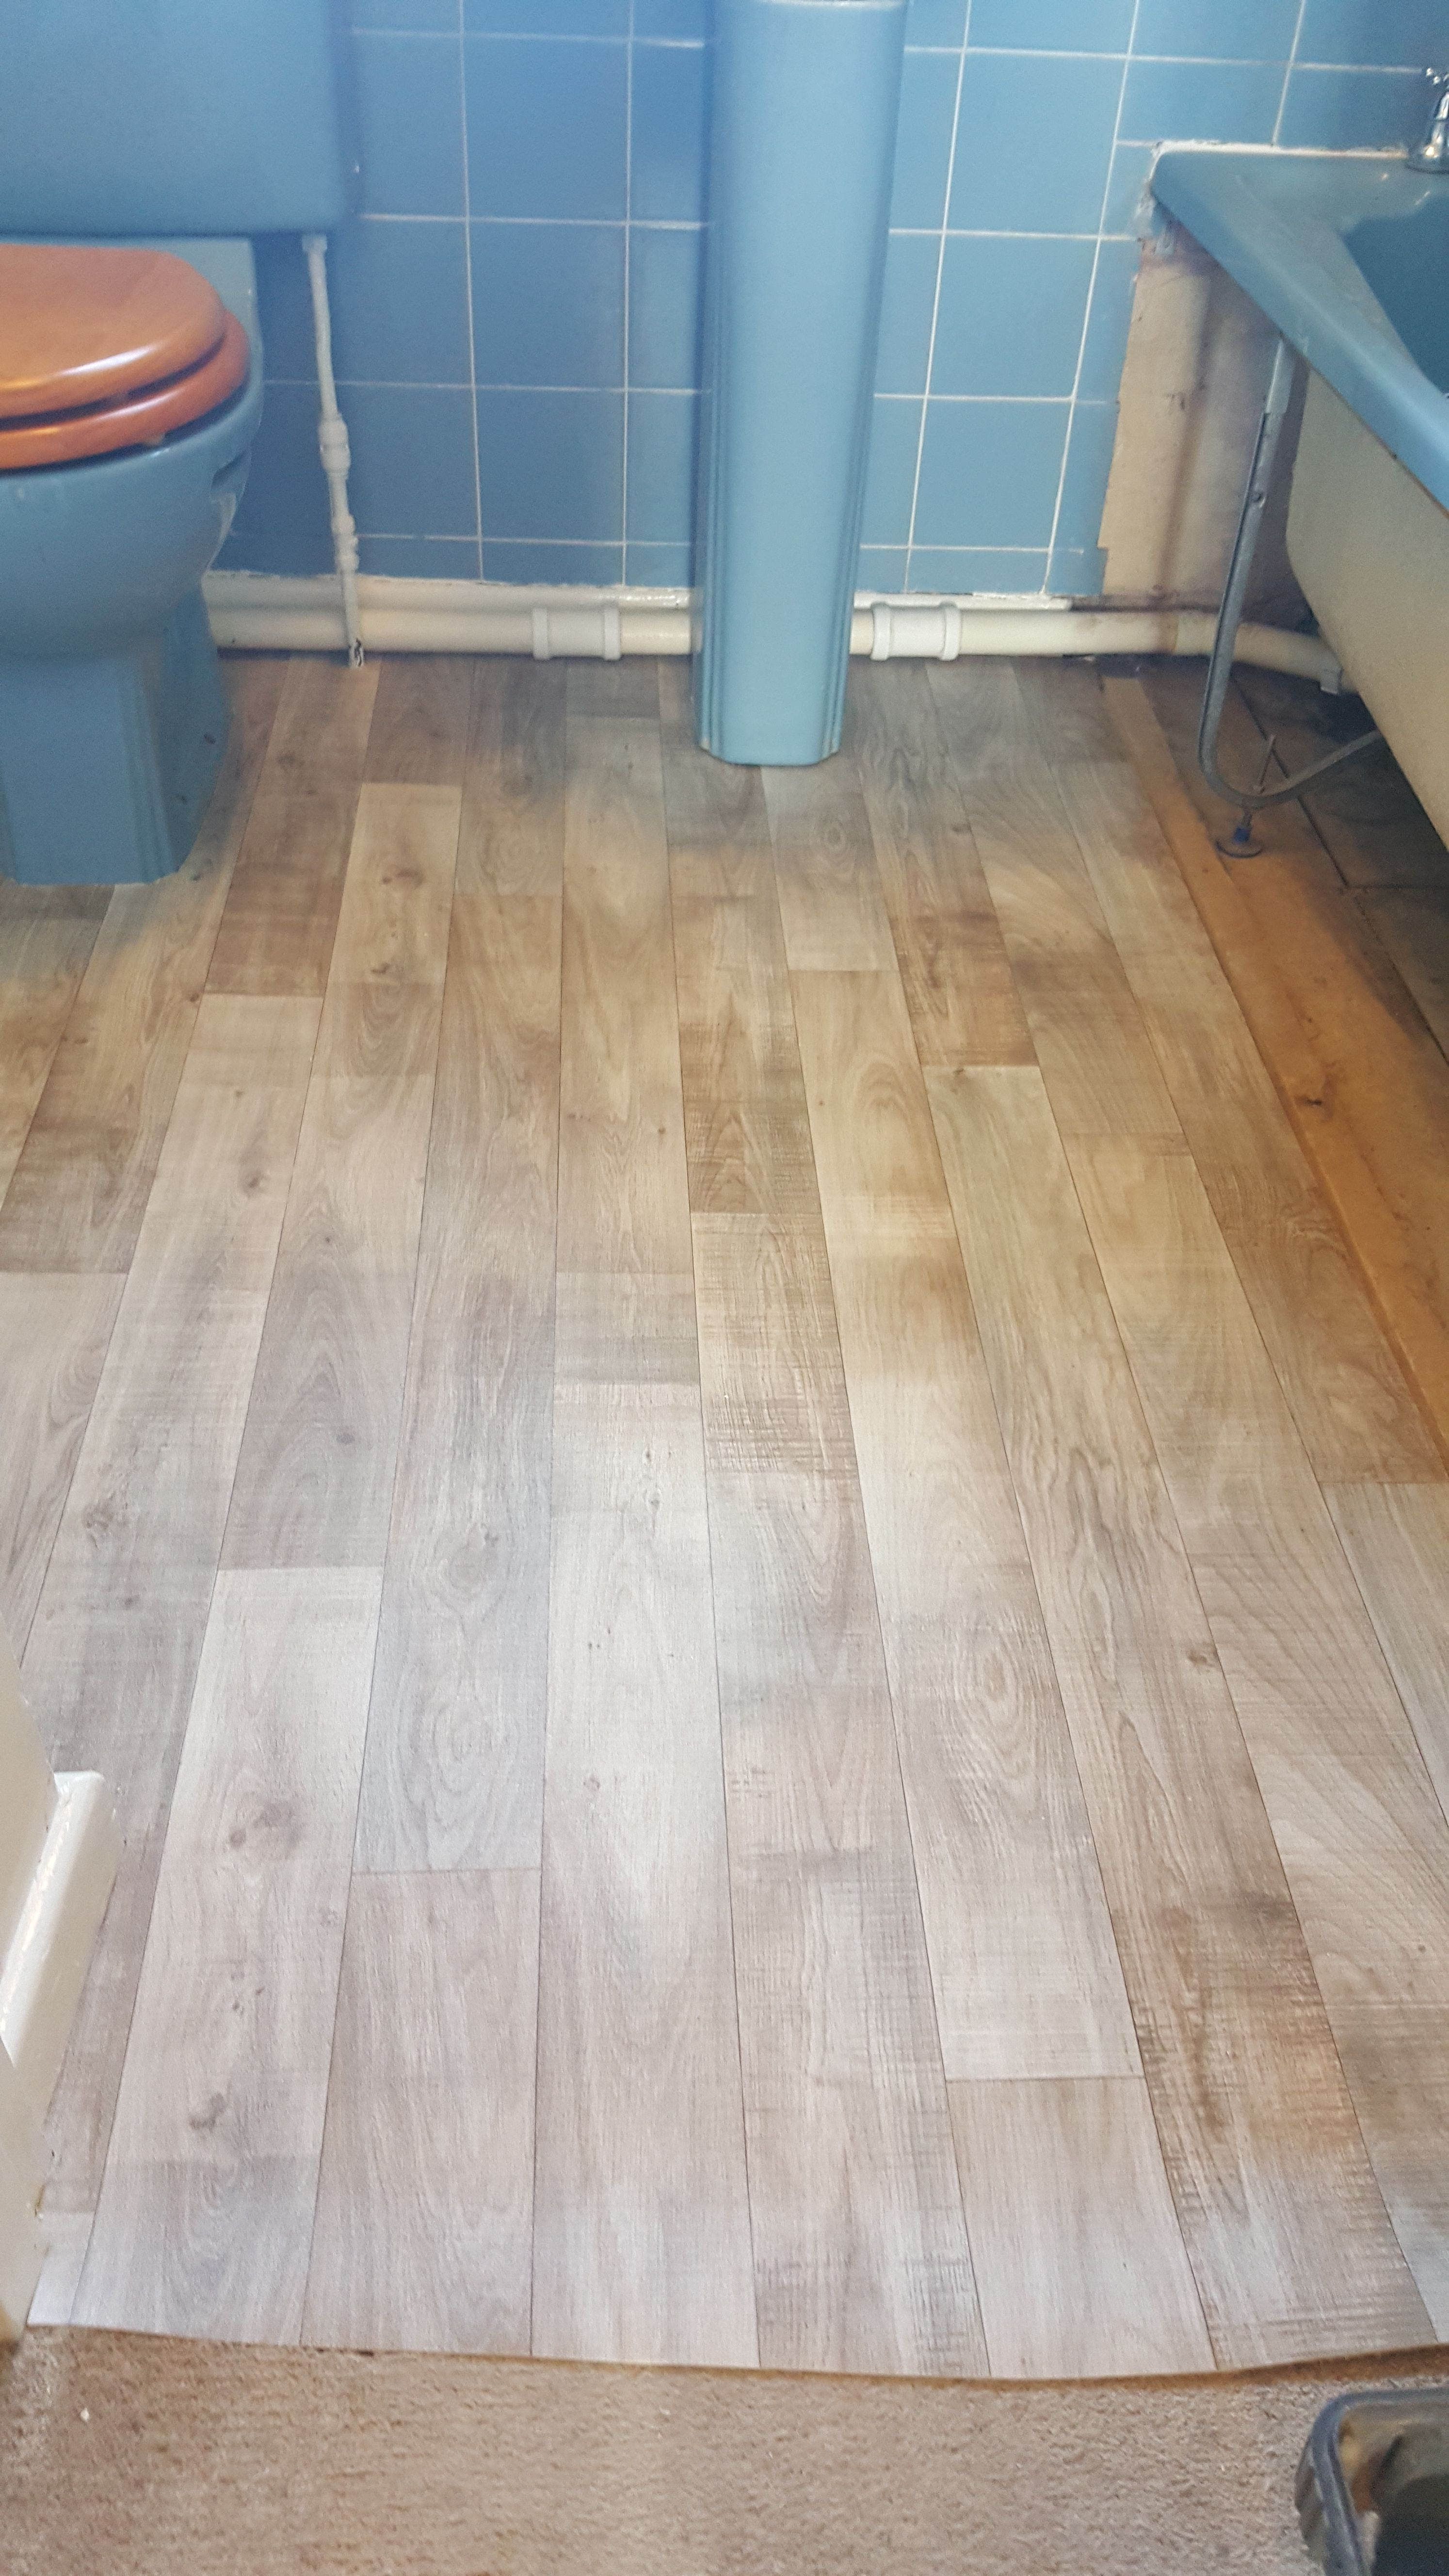 Wood Effect Vinyl Flooring Fitted To A Bathroom At Costessey Laid On 6 Mm Fg1 Rated Plywood Due To Very Uneven Fl Vinyl Flooring Flooring Vinyl Tile Flooring